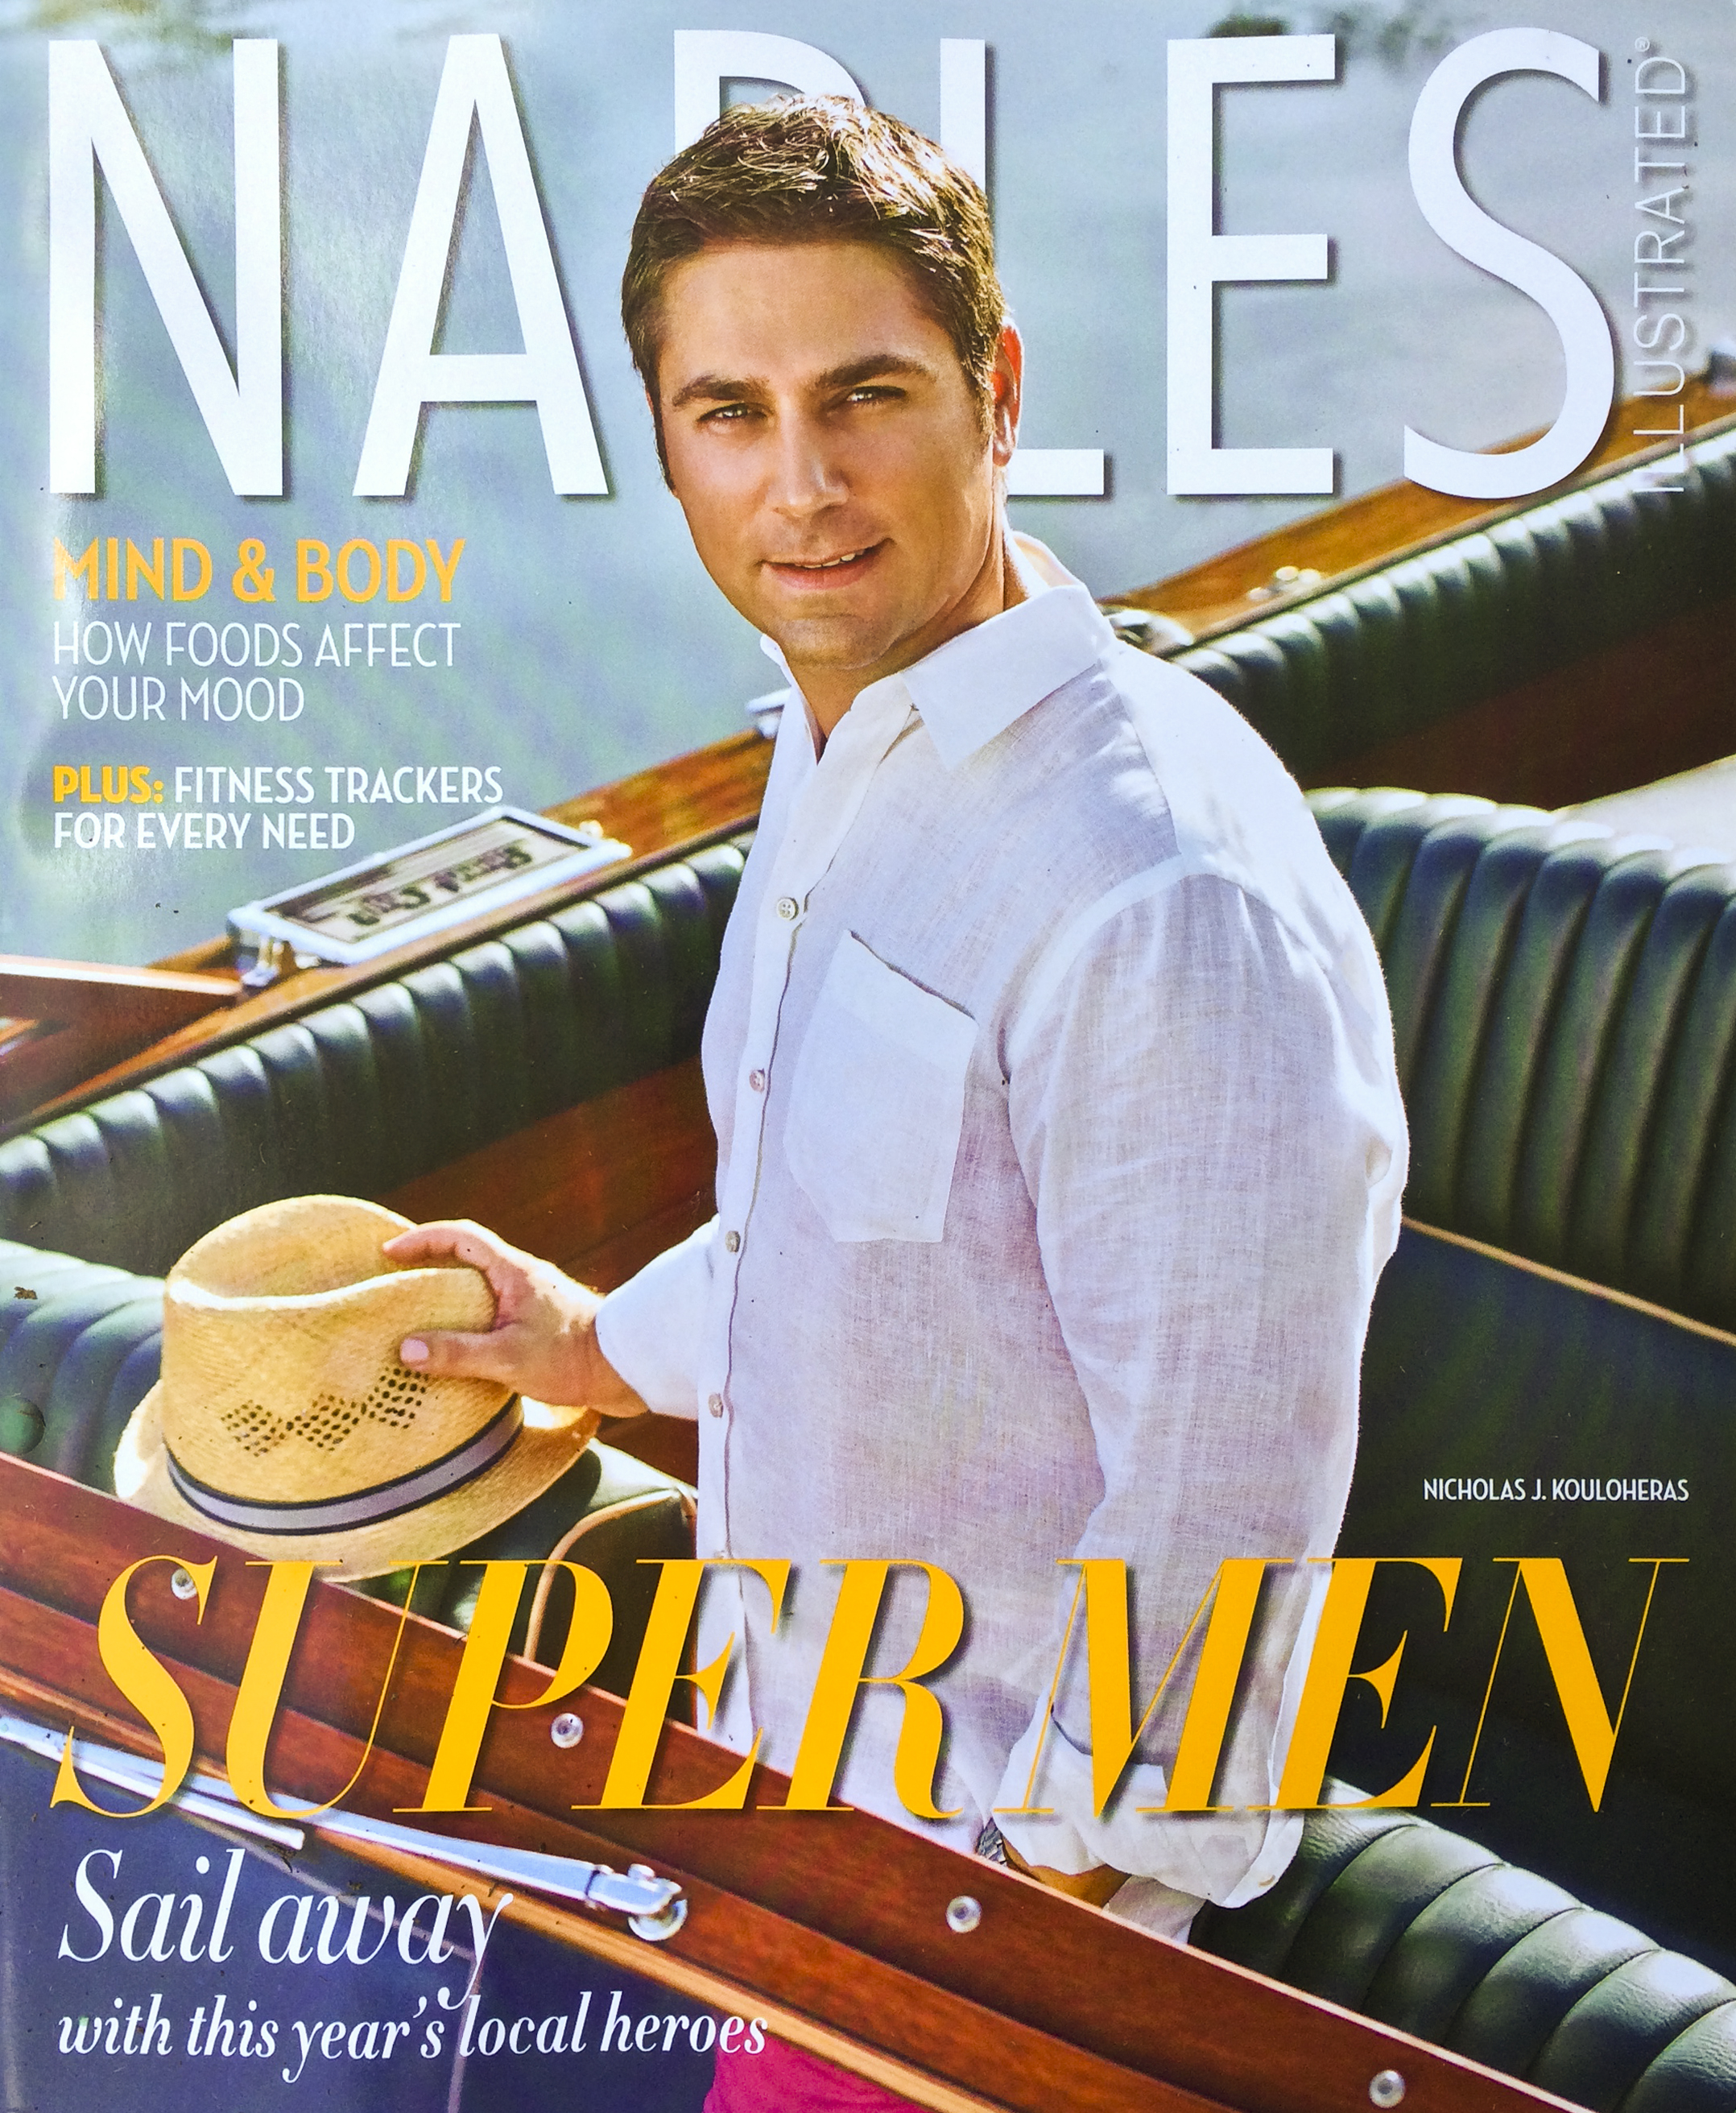 Nicholas Kouloheras on the cover; Styled by: Danielle Vigliotti with Saks Fifth Avenue Naples www.saksfifthavenue.com ; Groomed by: Philip Douglas and Co